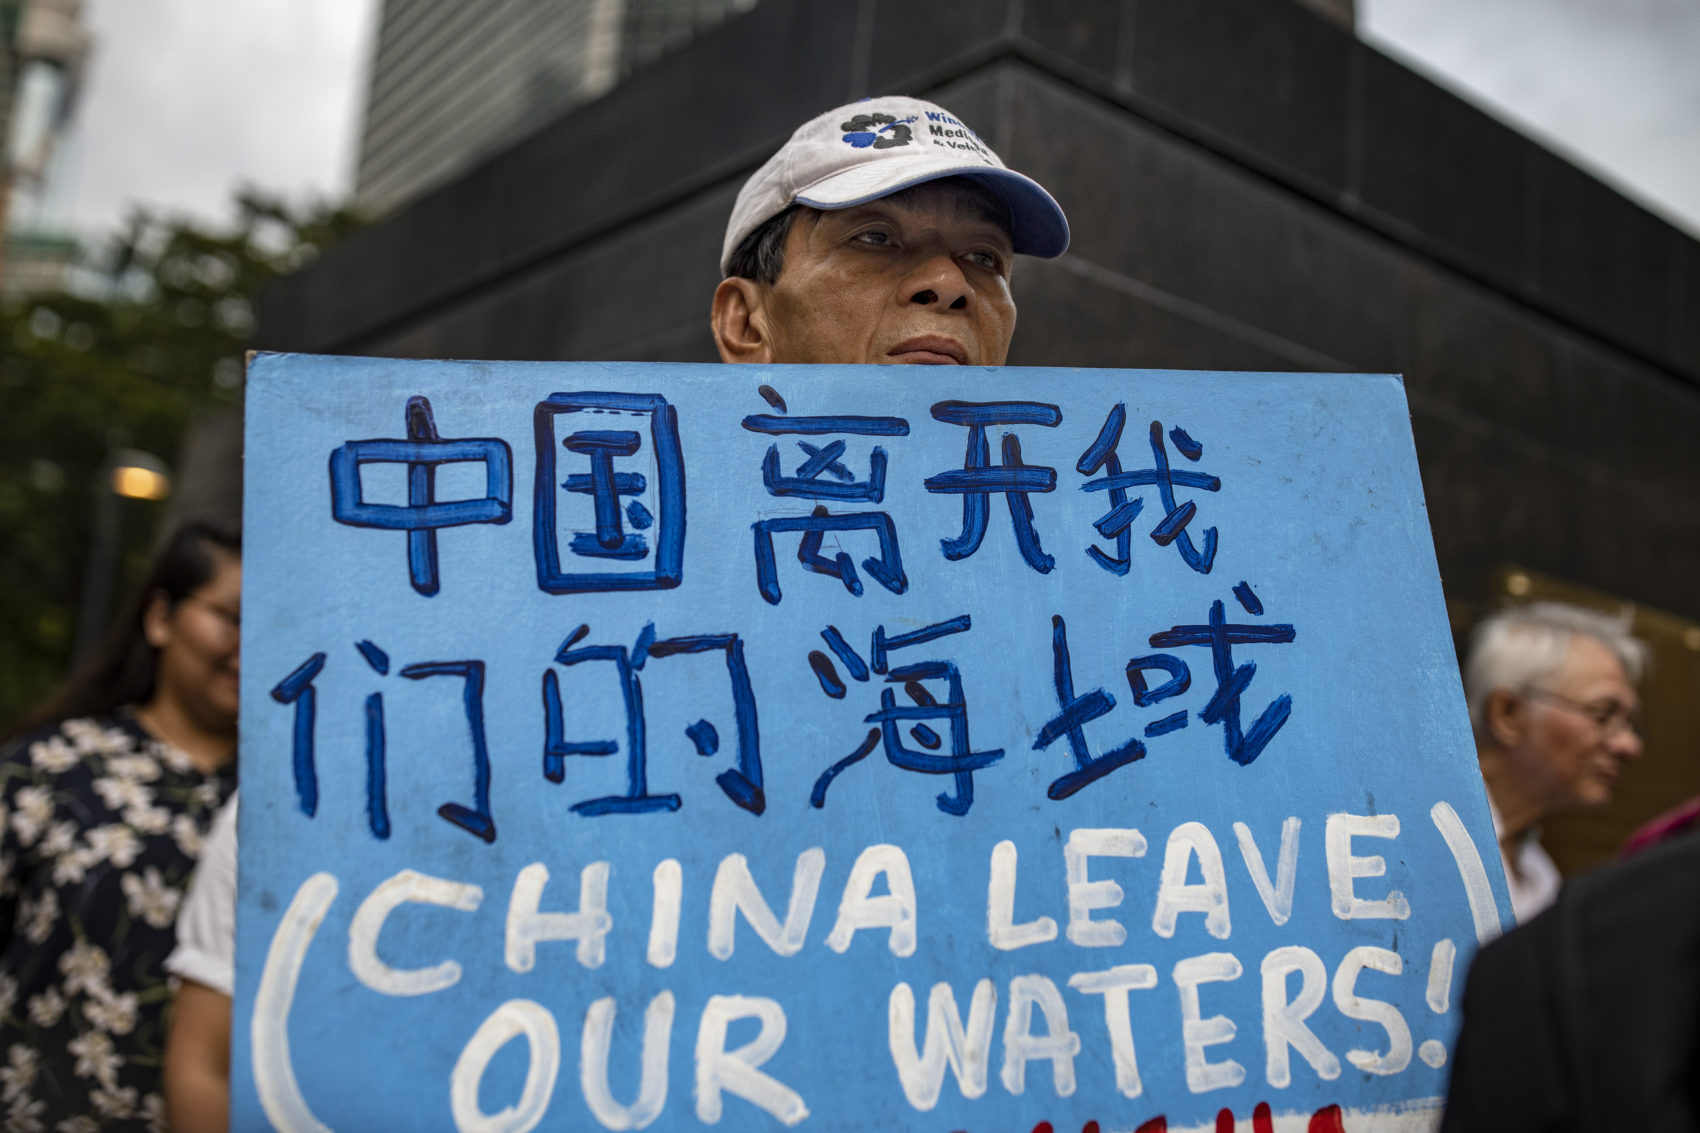 Filipinos take part in a protest condemning China's incursion at the West Philippine Sea in Makati, metro Manila, Philippines. (Ezra Acayan/Getty Images)